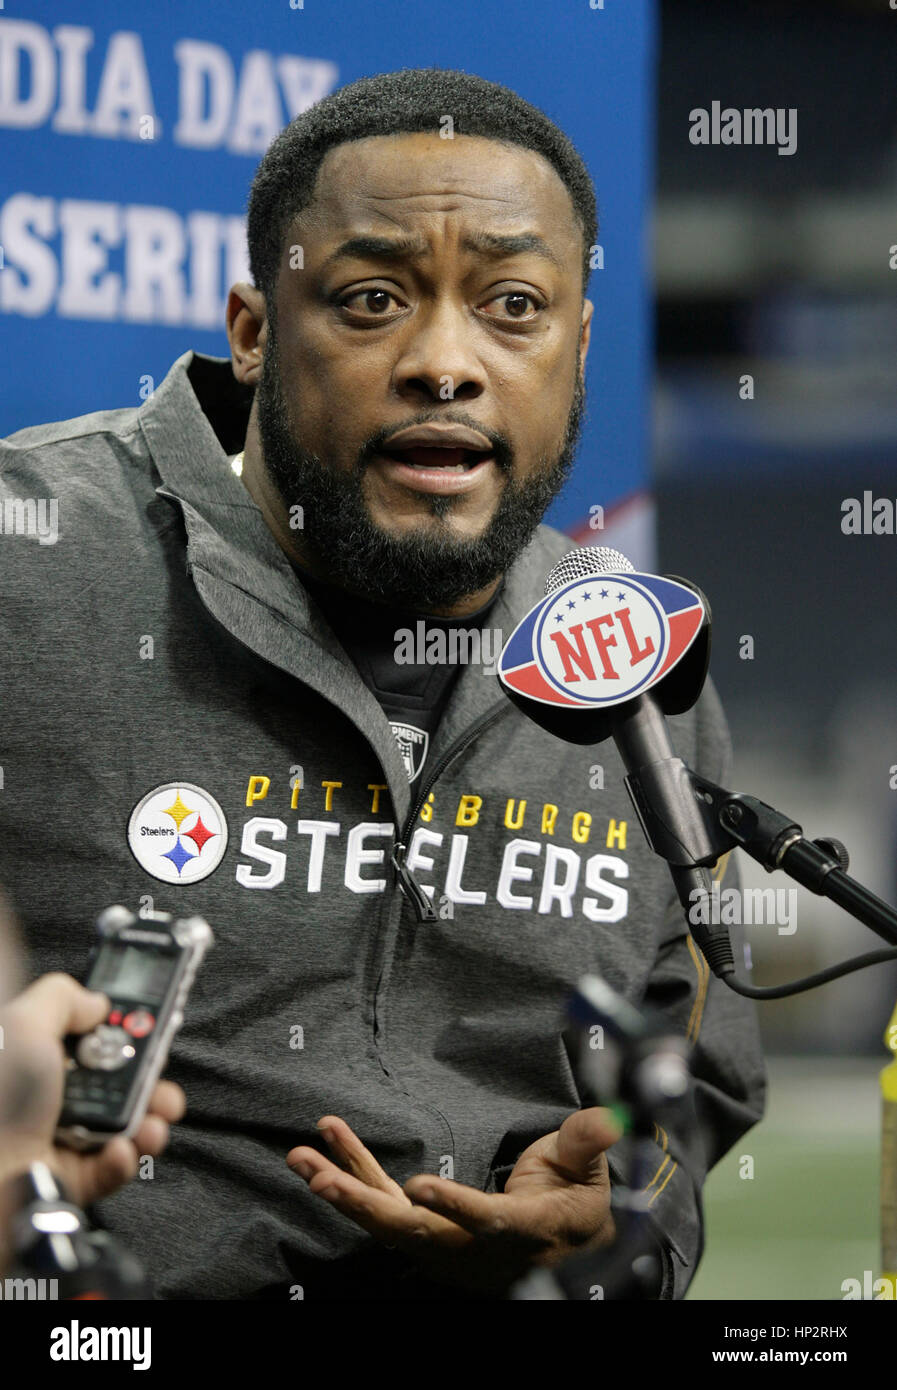 fb0b9beff Pittsburgh Steelers head coach Mike Tomlin at Super Bowl Media Day in  Cowboys Stadium on February 1